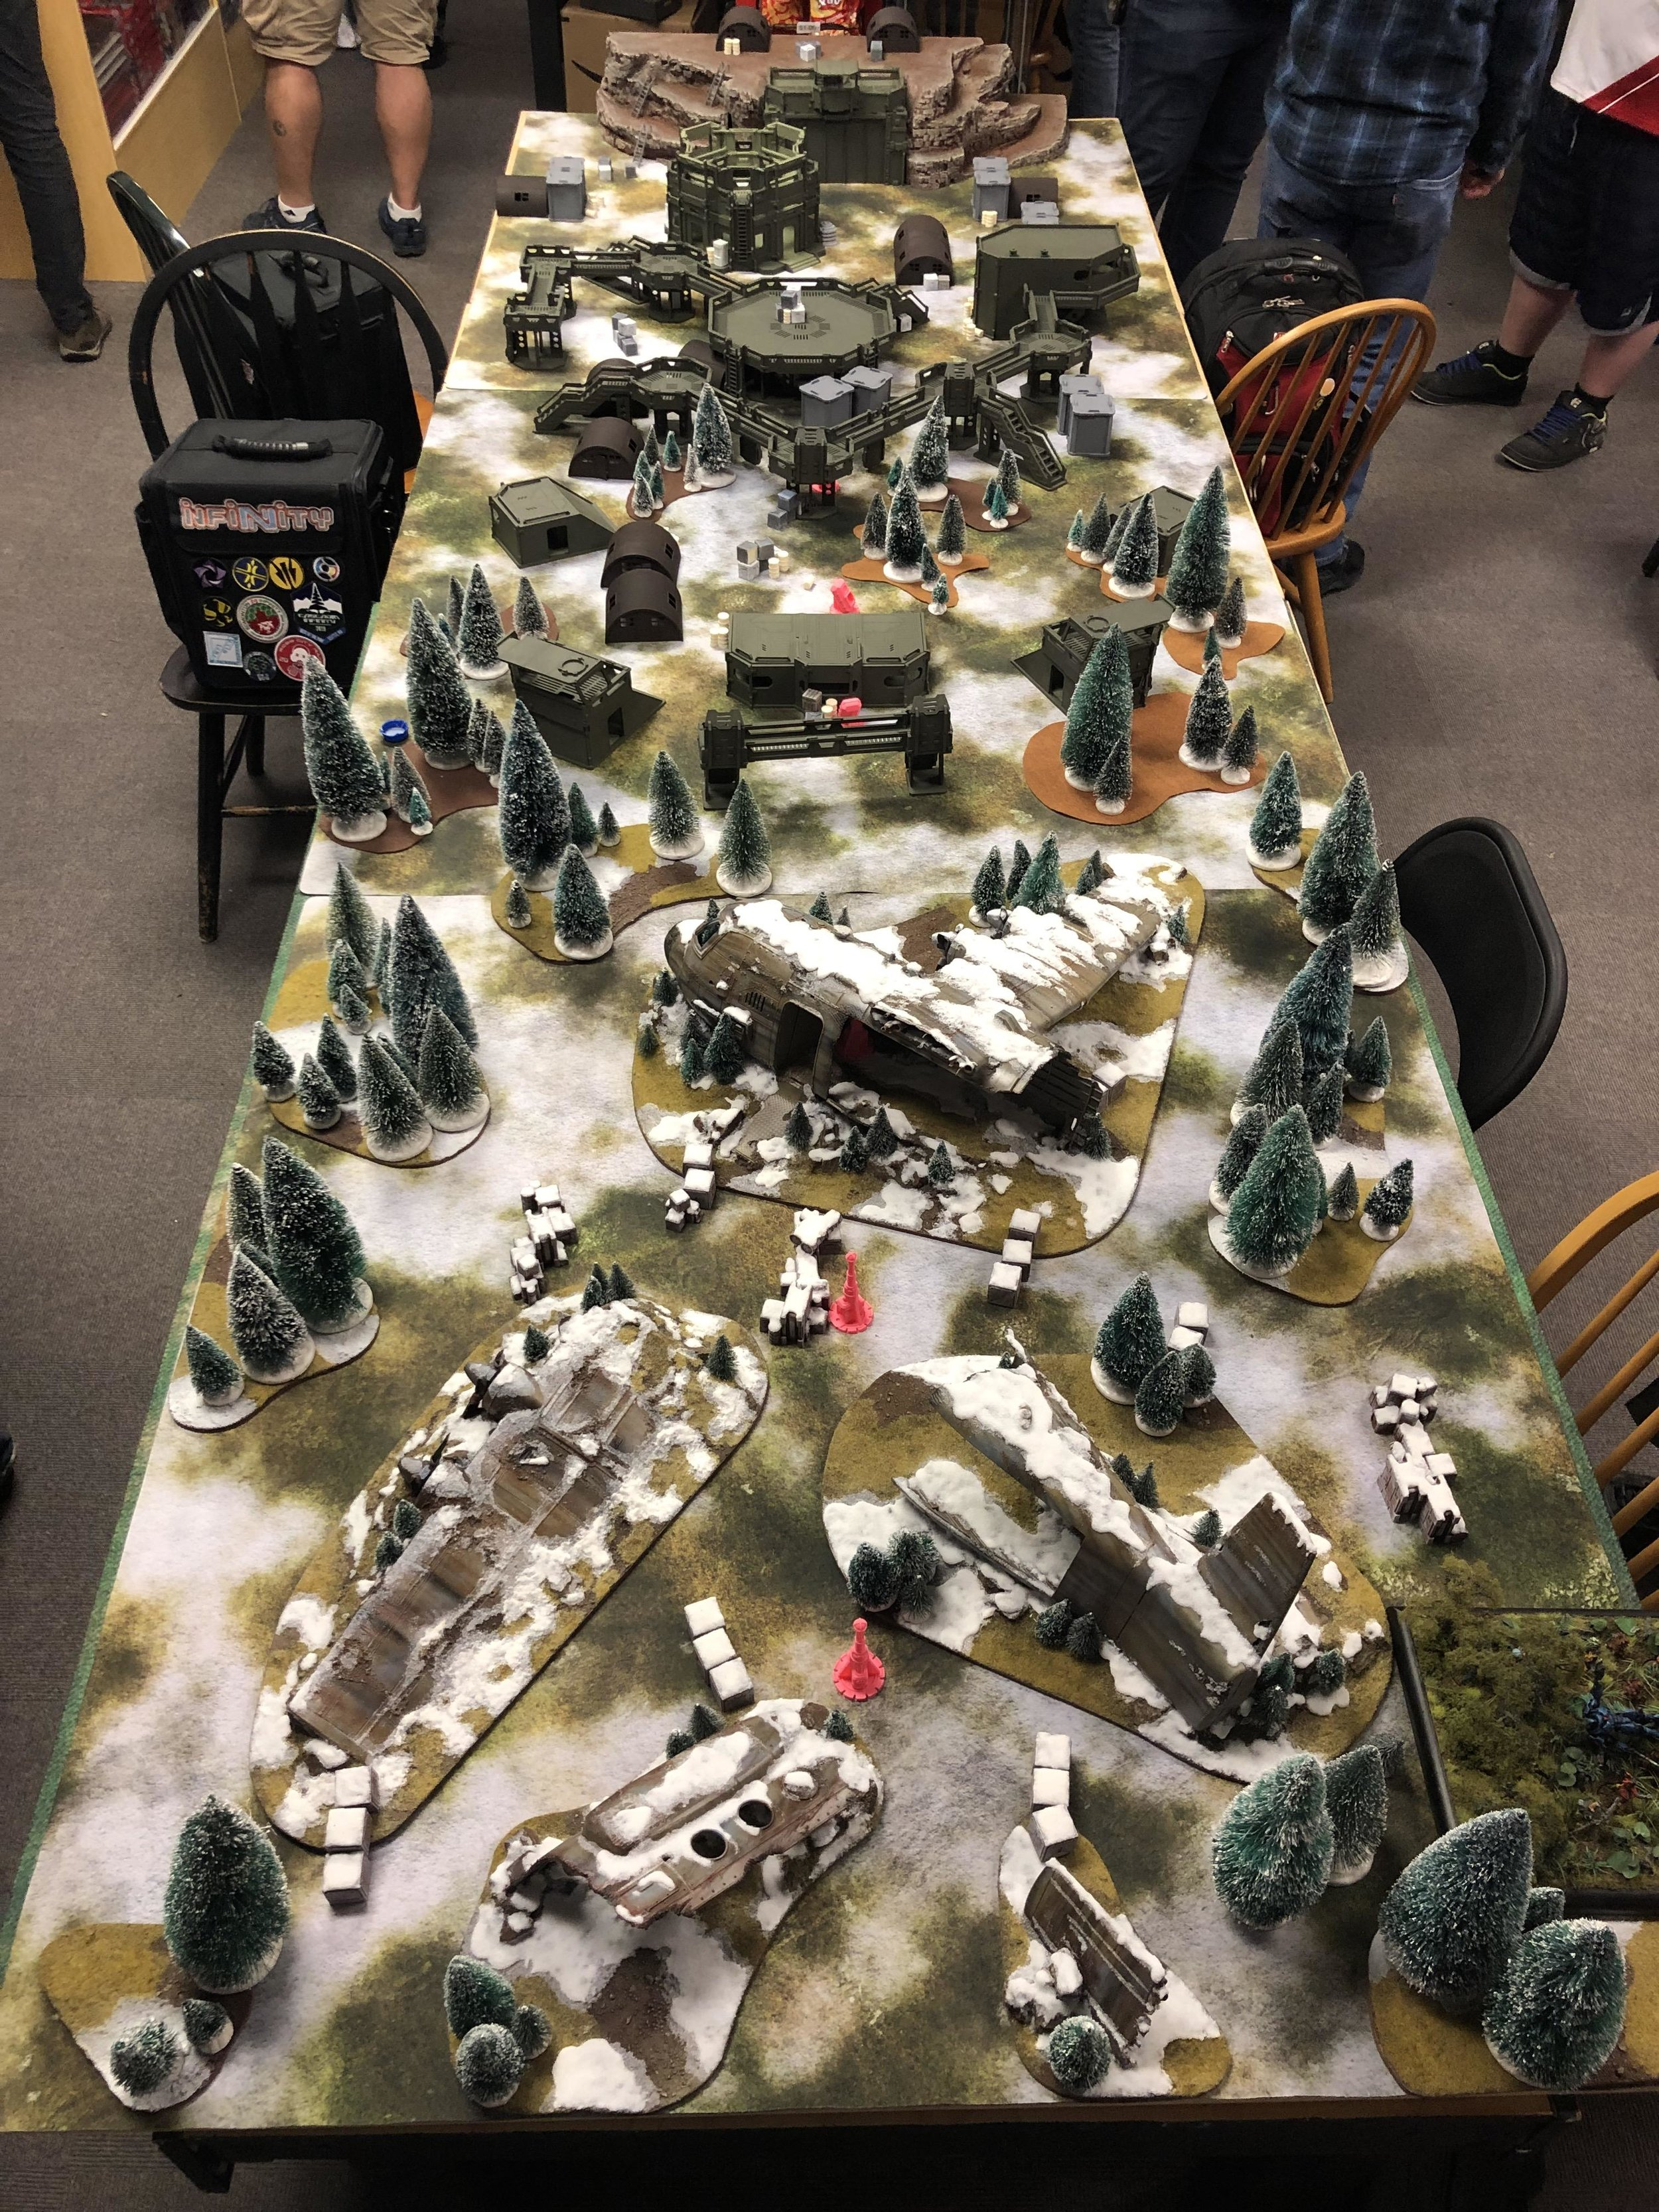 The whole scene, a plane crash, base, and mountain stronghold.